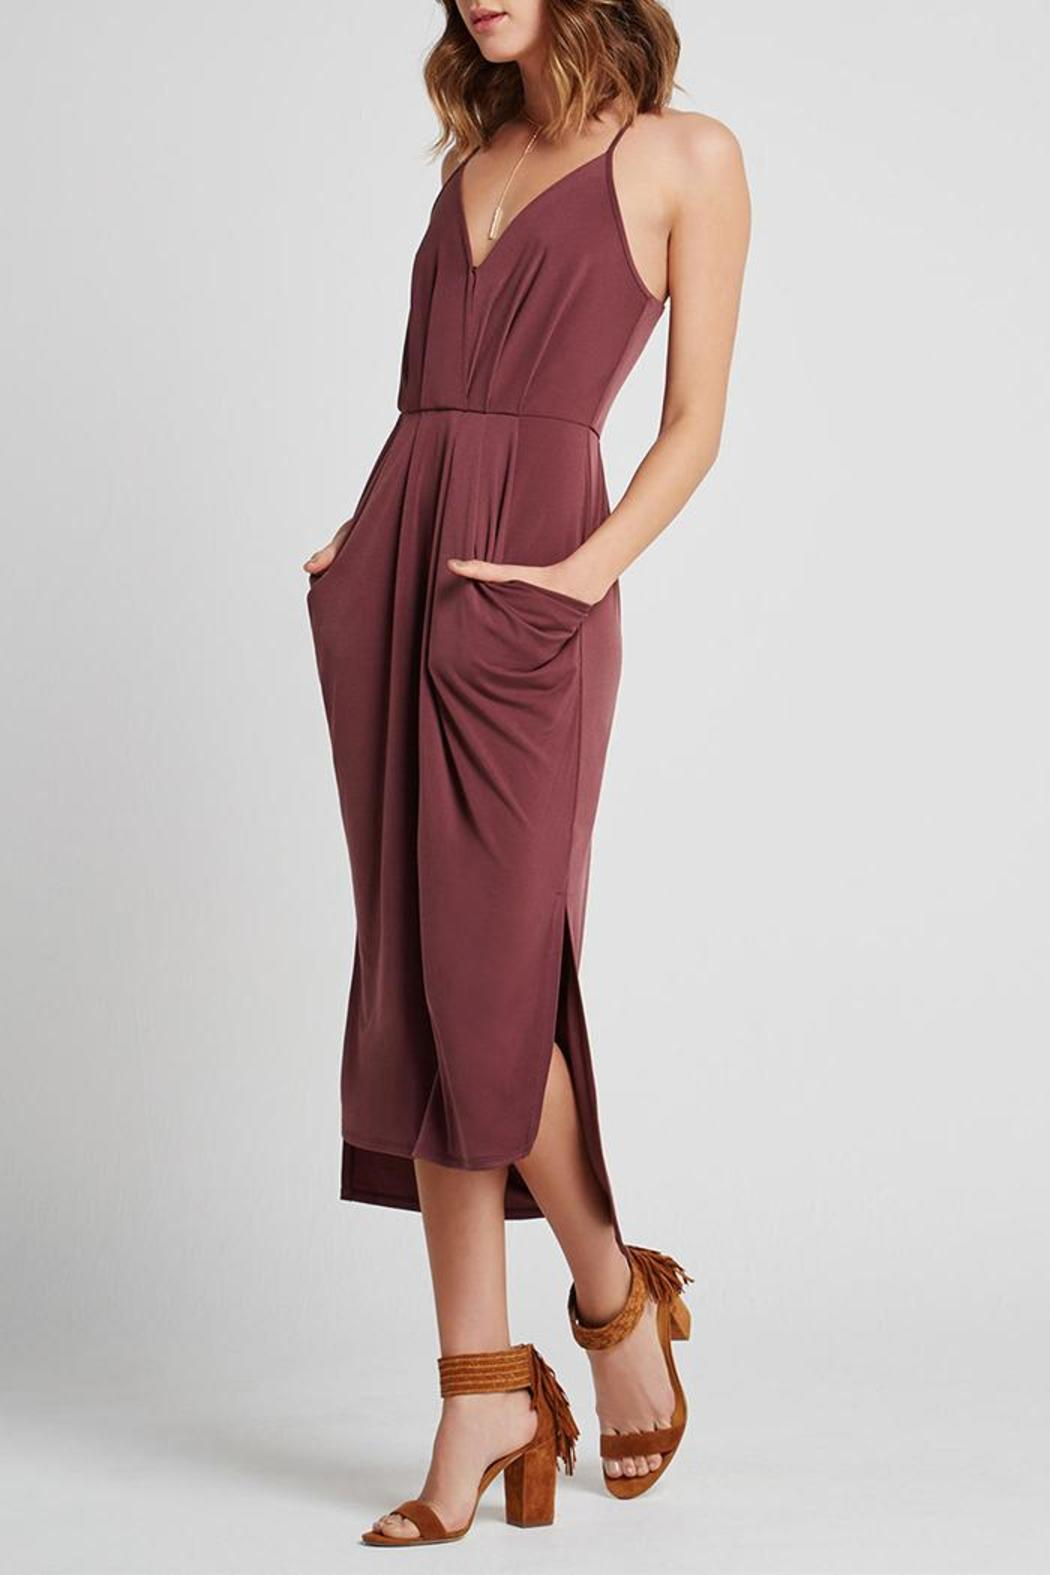 BCBGeneration Pocket V-Front Dress - Main Image